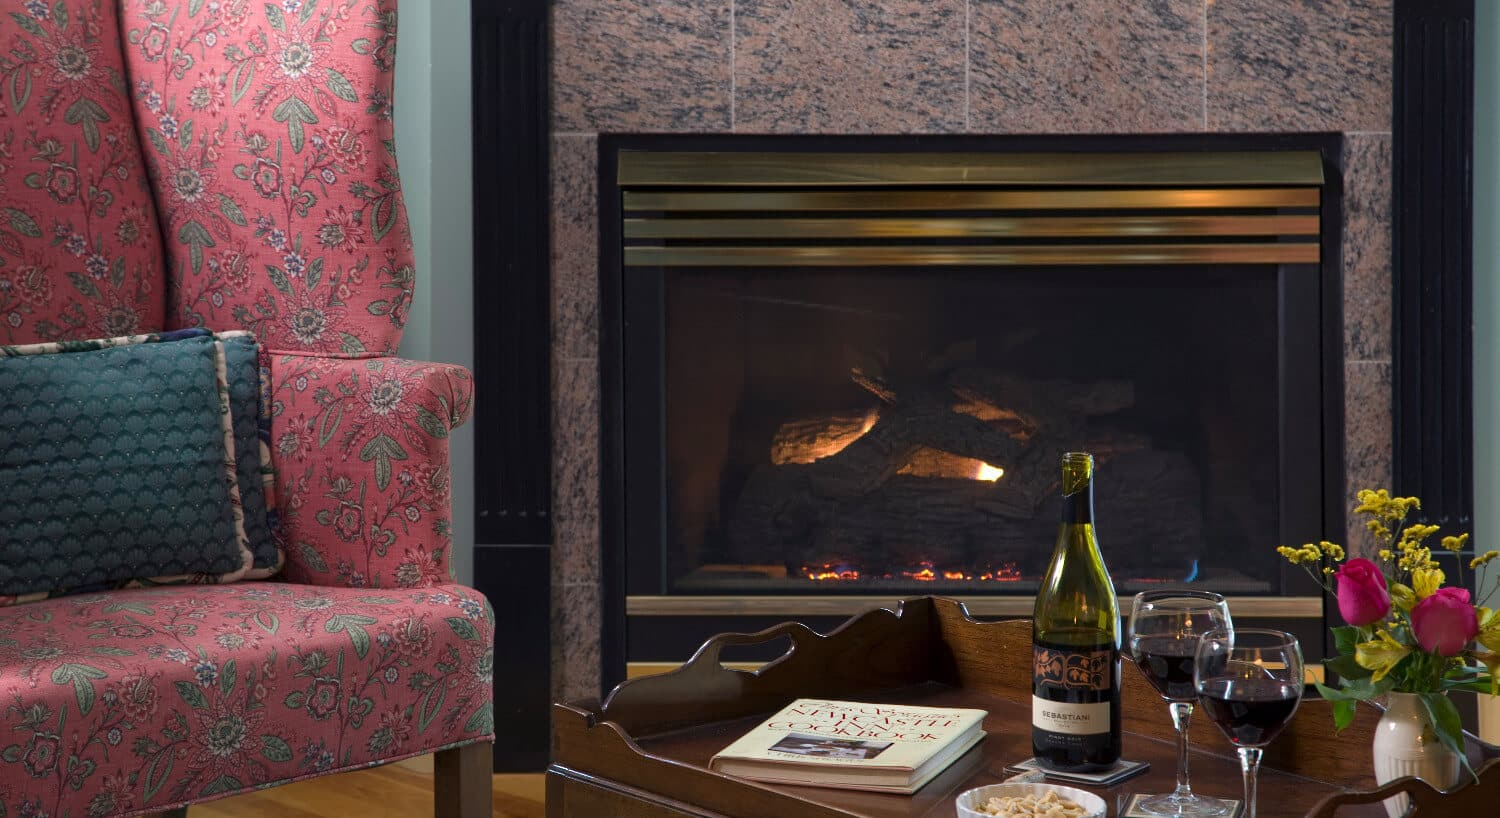 Wingback chairs sits next to a large fireplace fronted by a table with snacks and a bottle of wine.